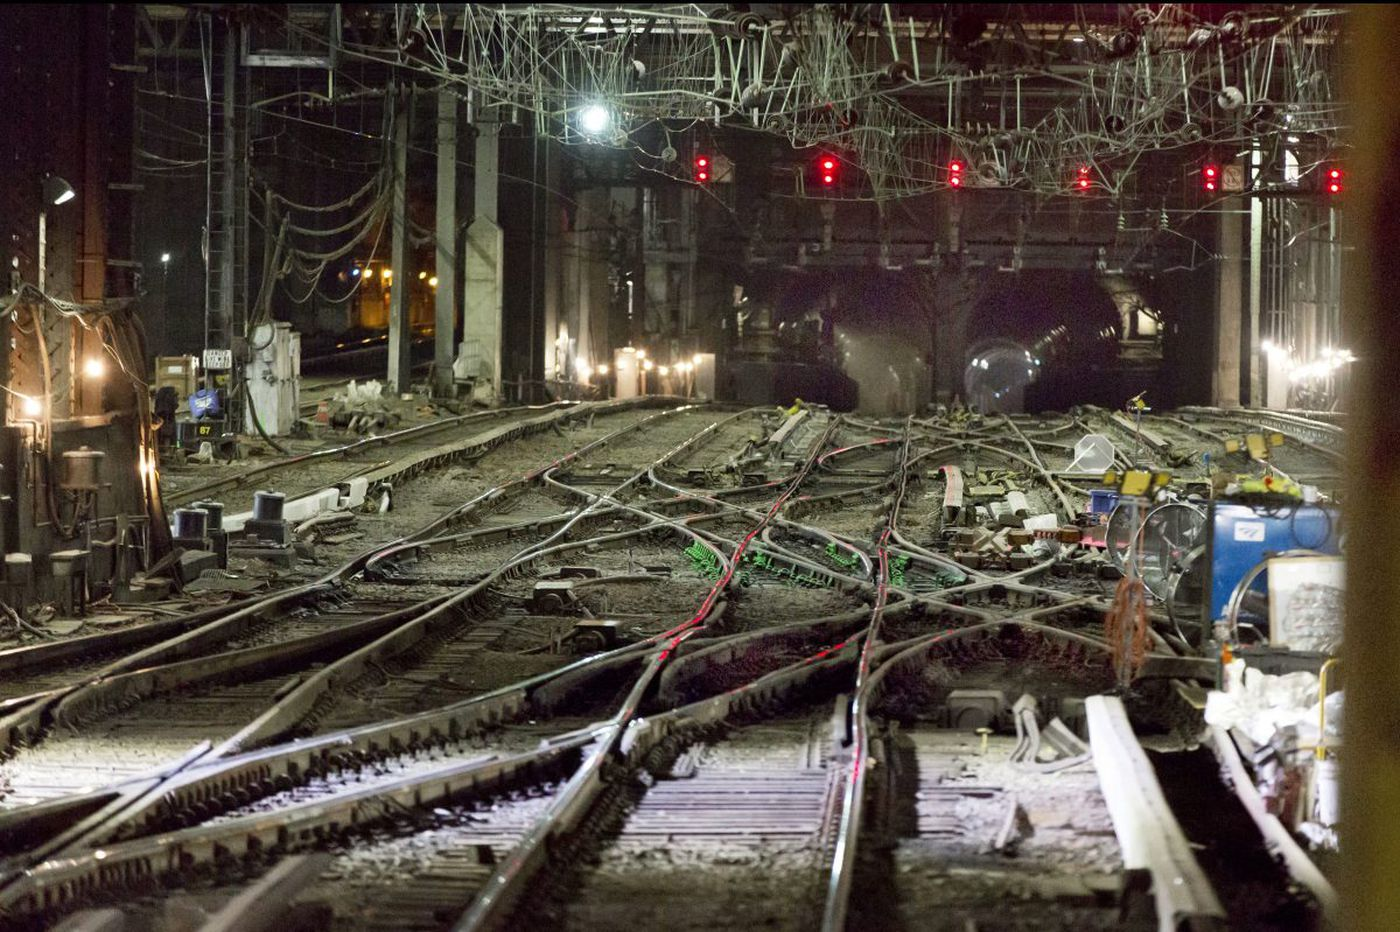 Penn Station project shows Amtrak's efficiency, and need for infrastructure investment